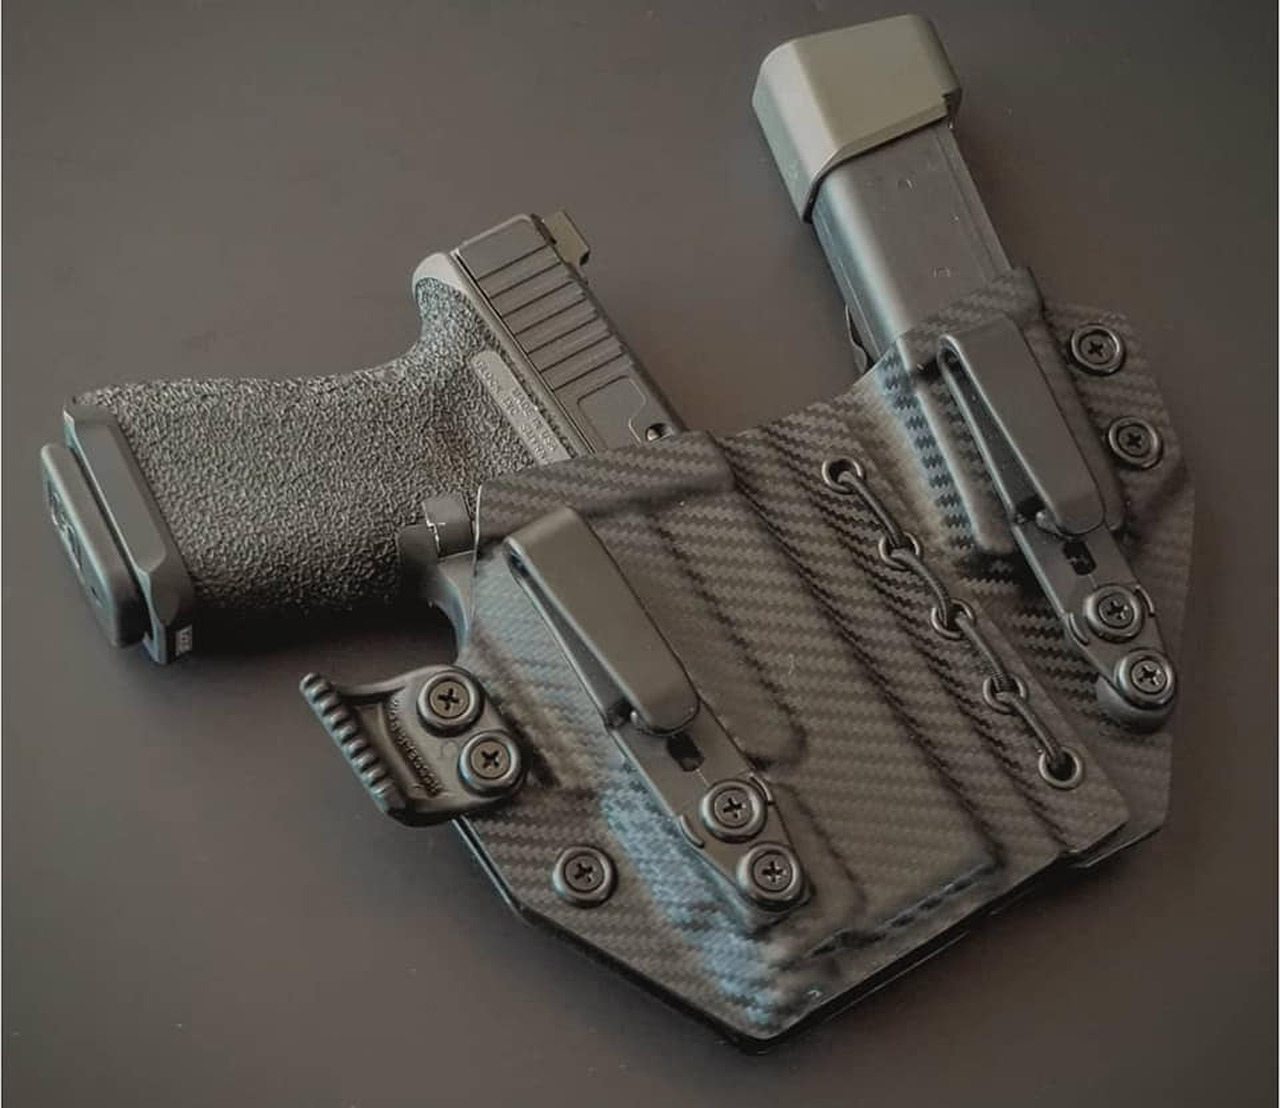 Glock 19 with APLc Appendix Carry Holster Rig with Shockcord